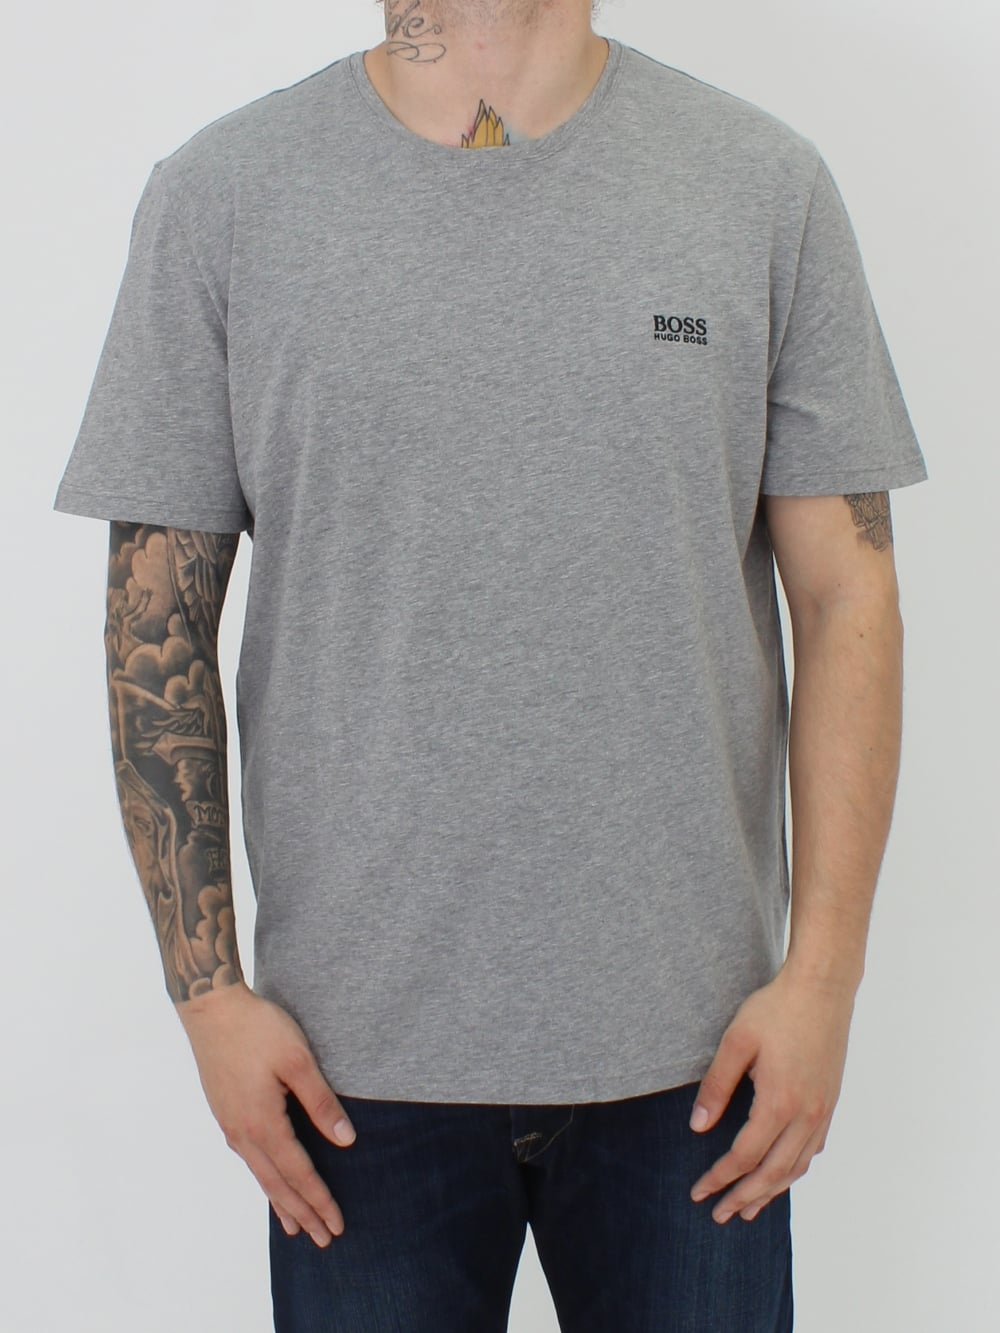 Boss Hugo Boss Mix   Match T.Shirt in Grey - Northern Threads 656d954f5